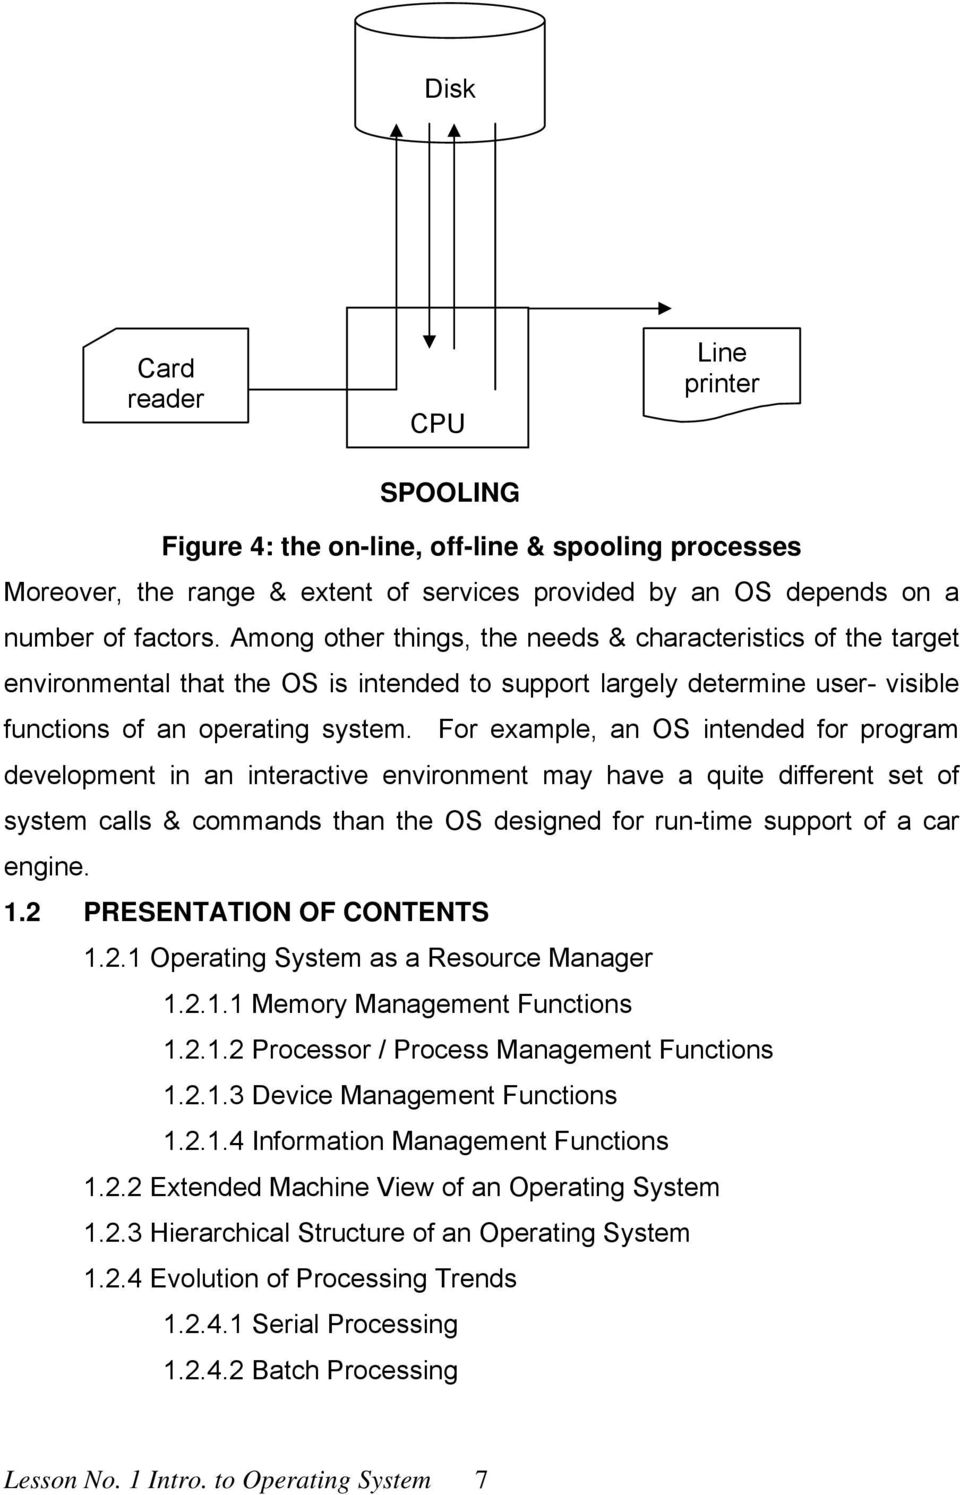 For example, an OS intended for program development in an interactive environment may have a quite different set of system calls & commands than the OS designed for run-time support of a car engine.